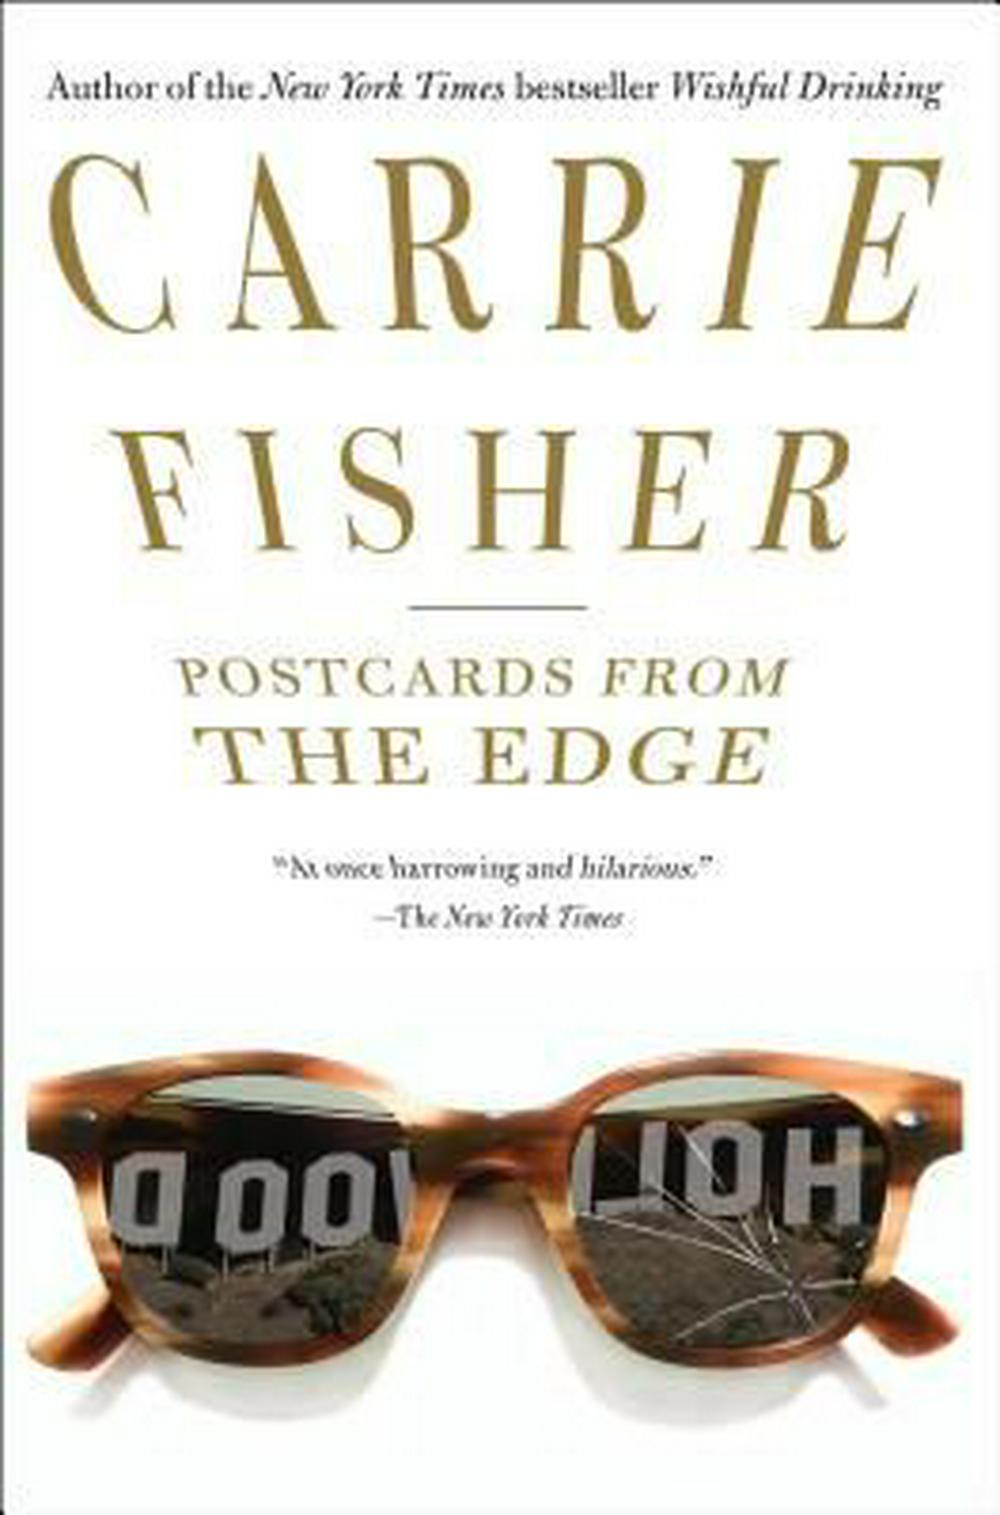 Postcards from the Edge by Carrie Fisher, ISBN: 9781439194003